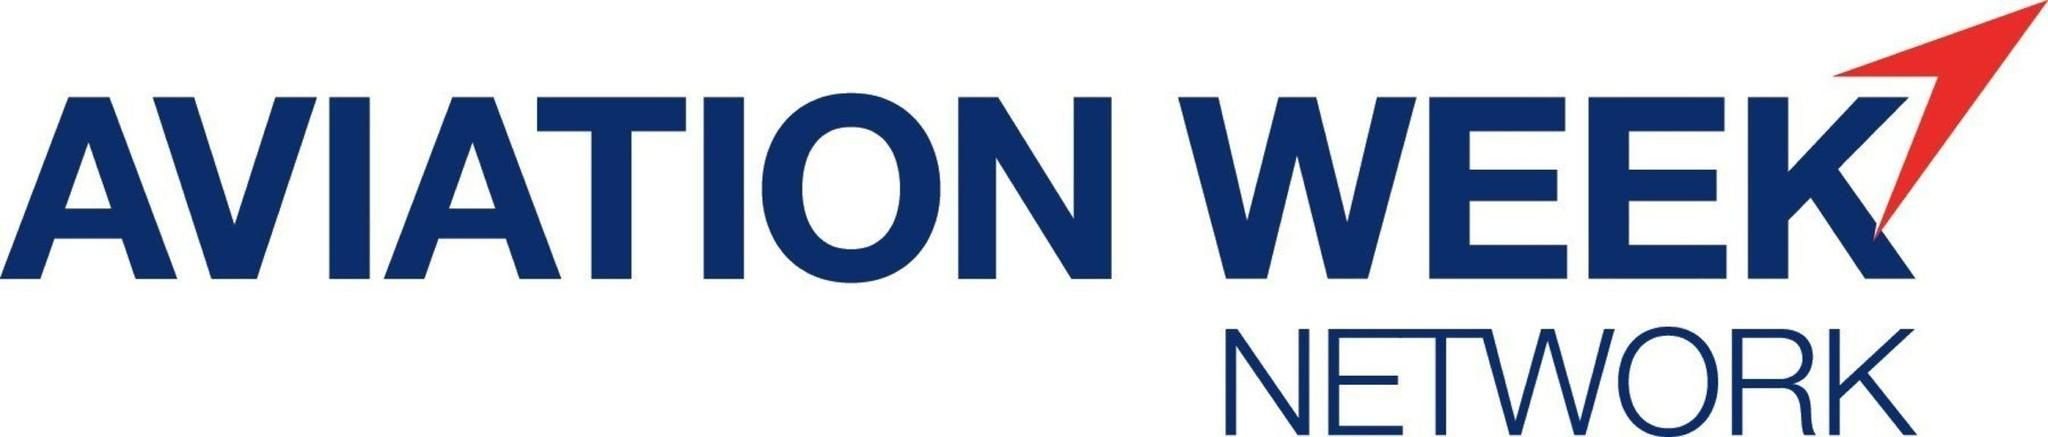 Aviation Week Network (AWN)